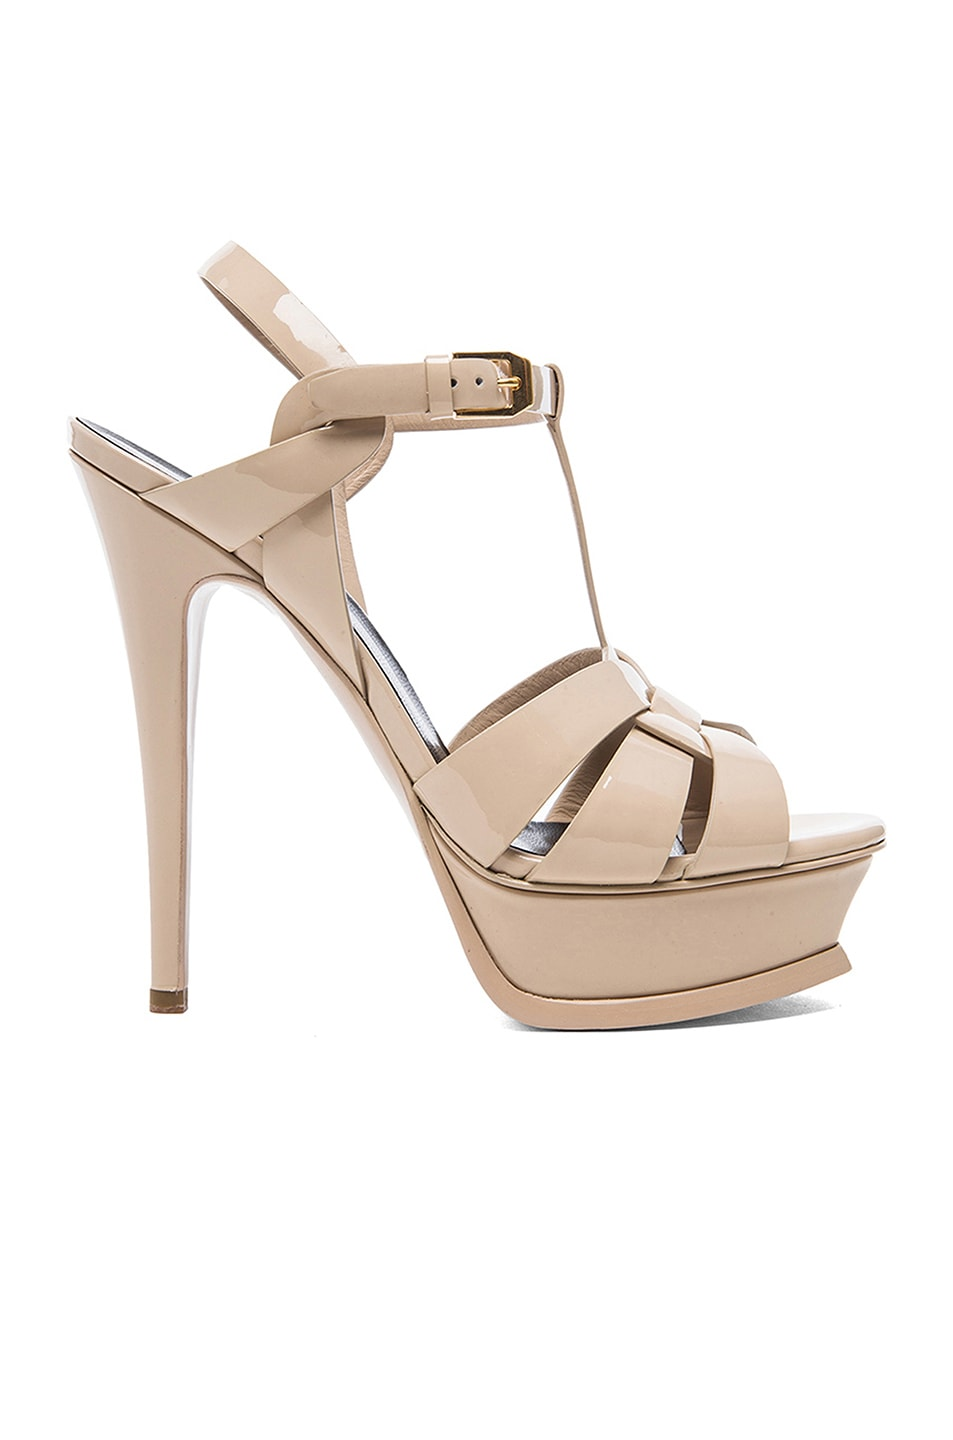 Image 1 of Saint Laurent Tribute Patent Leather Platform Sandals in Poudre